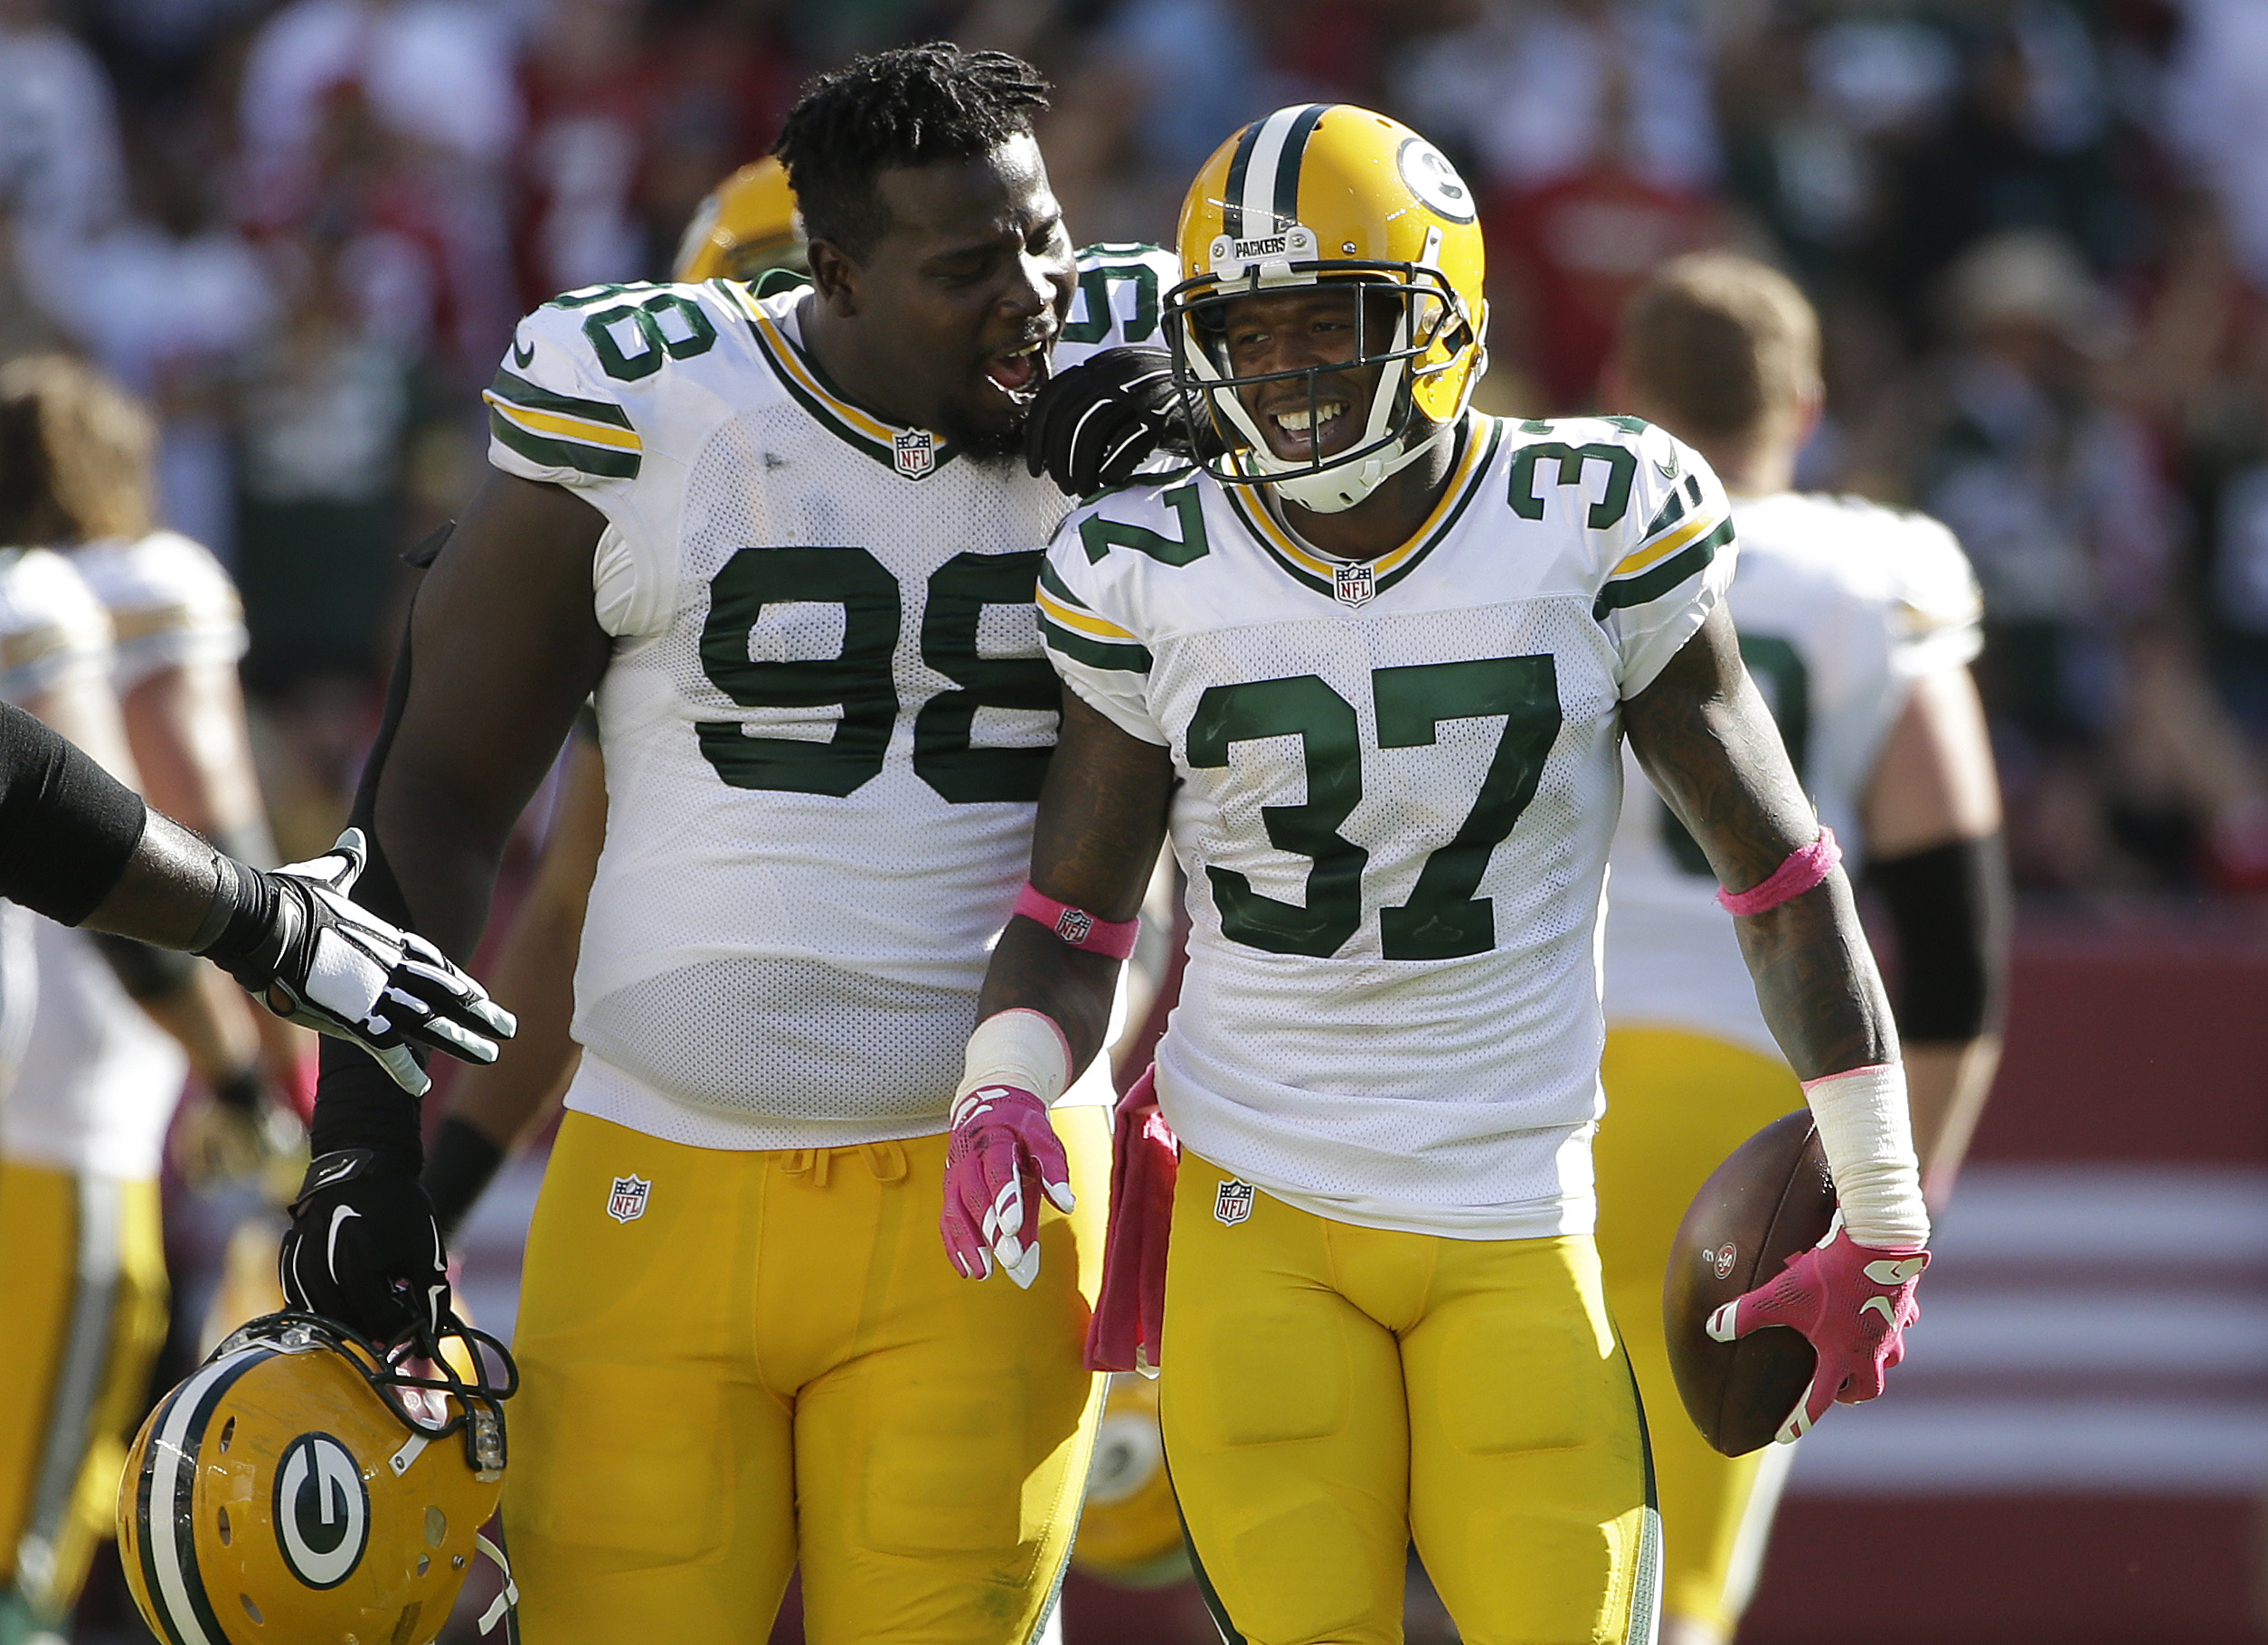 Green Bay Packers cornerback Sam Shields (37) celebrates with nose tackle Letroy Guion (98) after intercepting a pass from San Francisco 49ers quarterback Colin Kaepernick during the second half of an NFL football game in Santa Clara, Calif., Sunday, Oct.